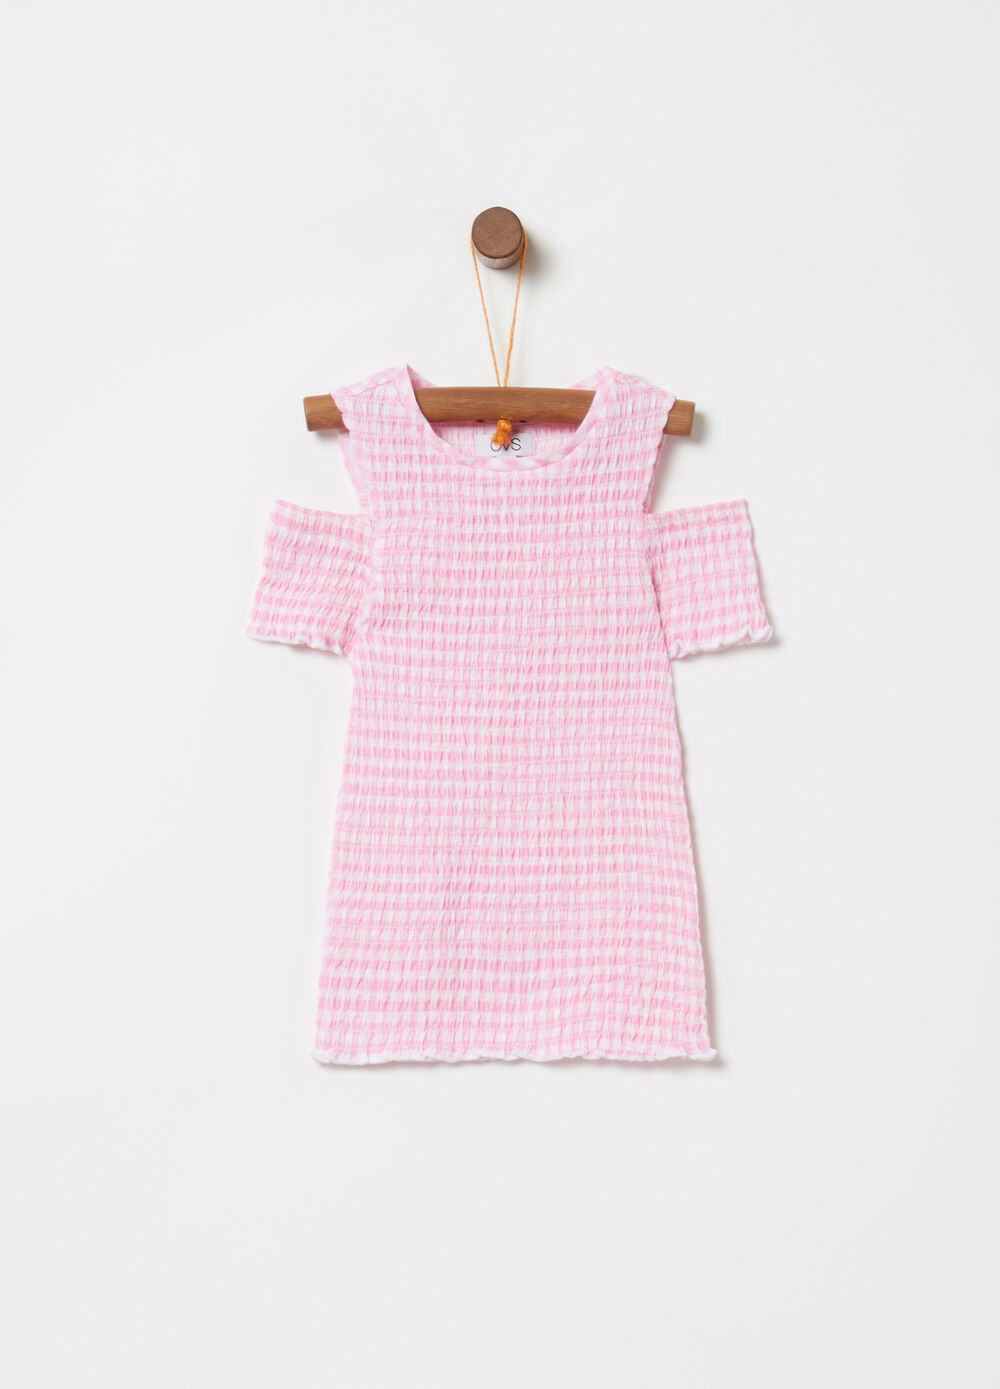 Smock stitch top with check pattern